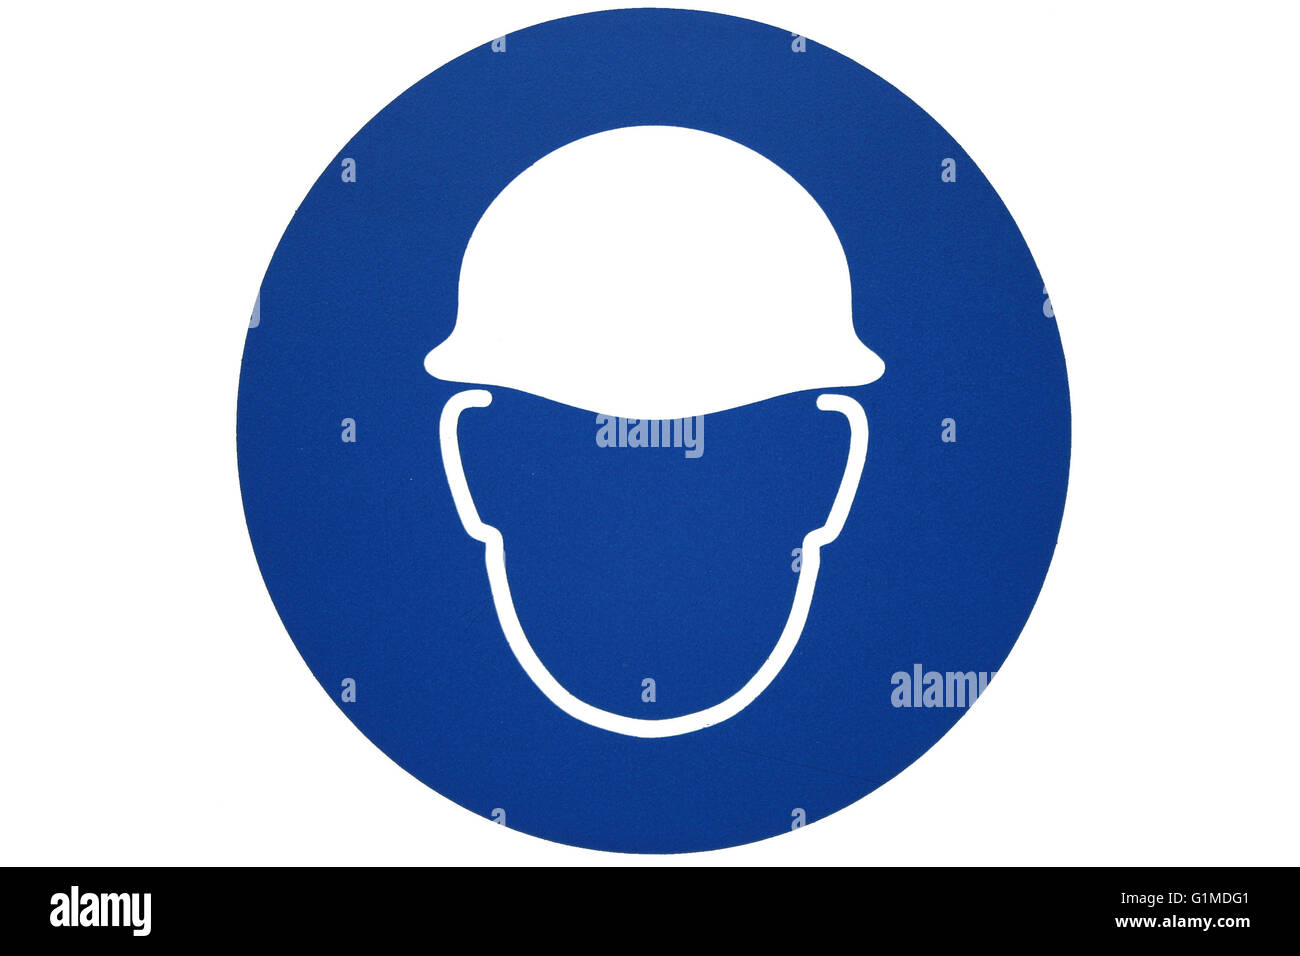 A safety helmet sign or motif showing a safety hat shape in